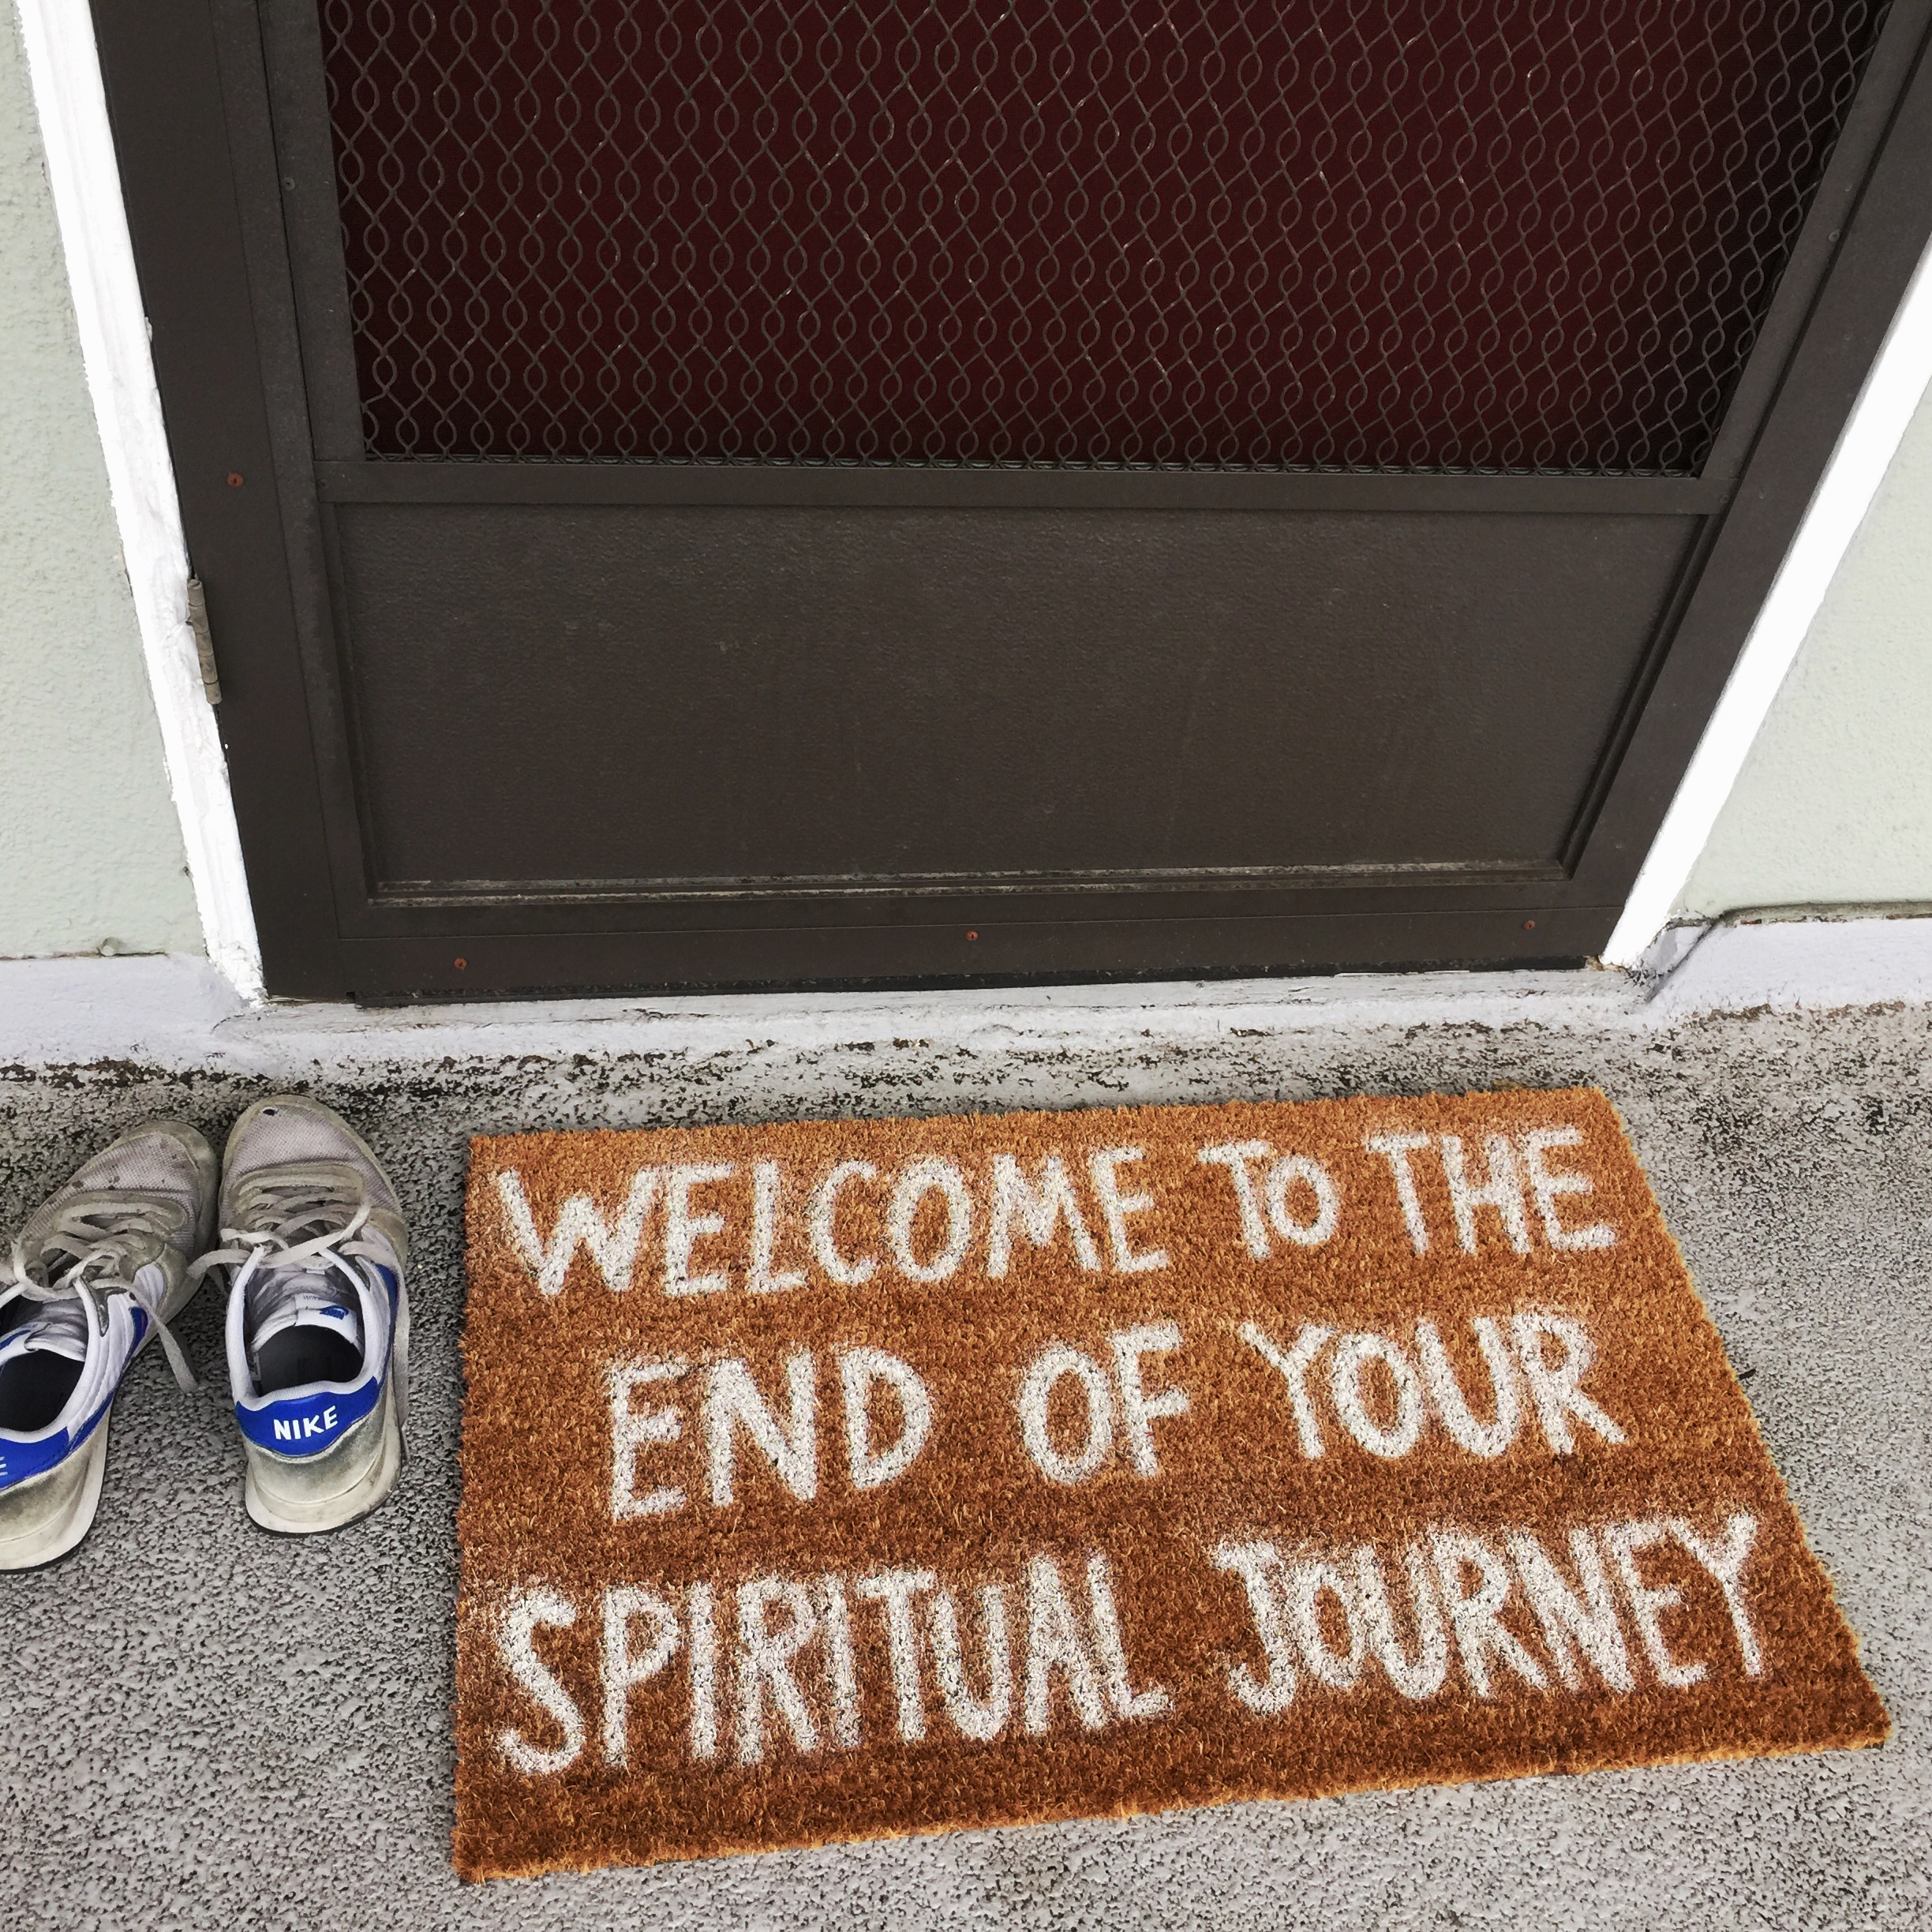 WELCOME TO THE END OF YOUR SPIRITUAL JOURNEY